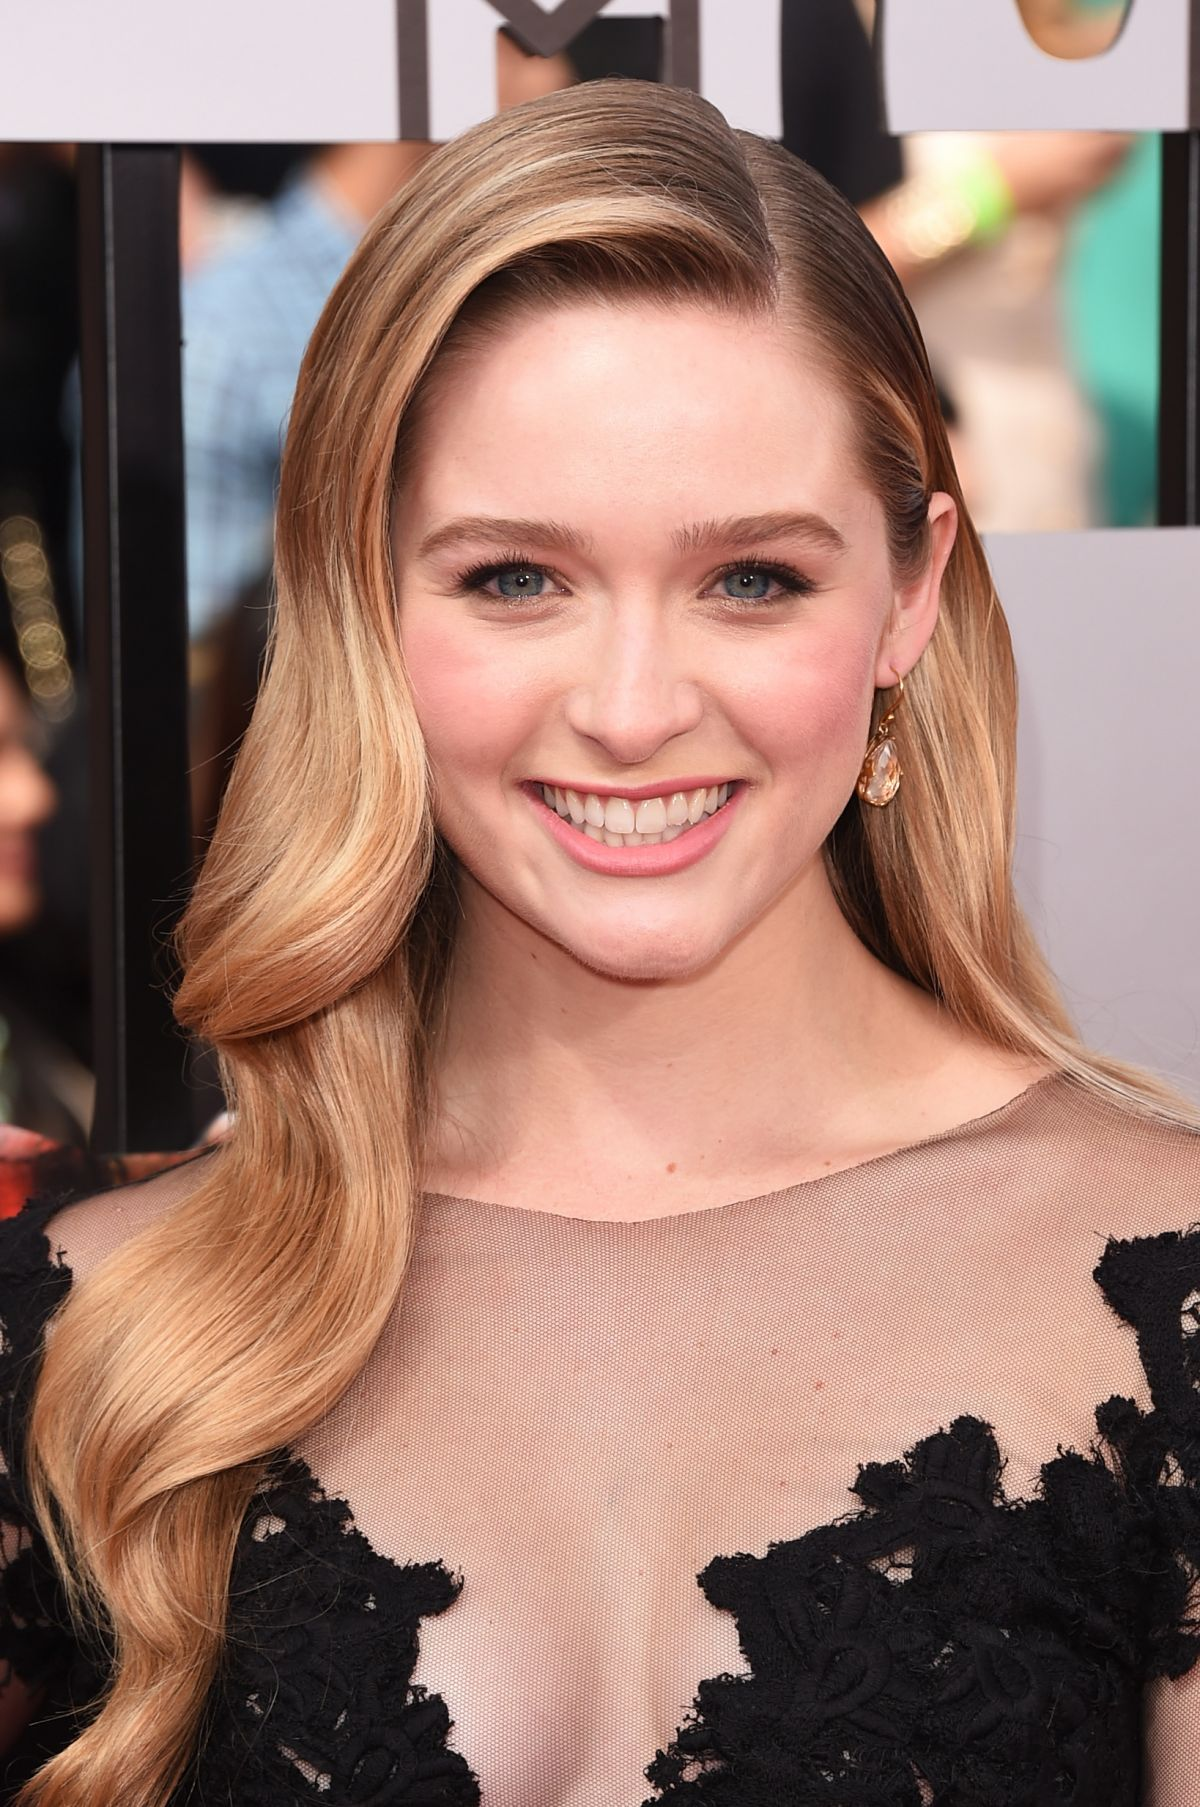 greer grammer twittergreer grammer instagram, greer grammer insta, greer grammer hawtcelebs, greer grammer, greer grammer golden globes, greer grammer boyfriend, greer grammer tumblr, greer grammer zimbio, greer grammer hot, greer grammer bikini, greer grammer imdb, greer grammer net worth, greer grammer kappa kappa gamma, greer grammer twitter, greer grammer snapchat